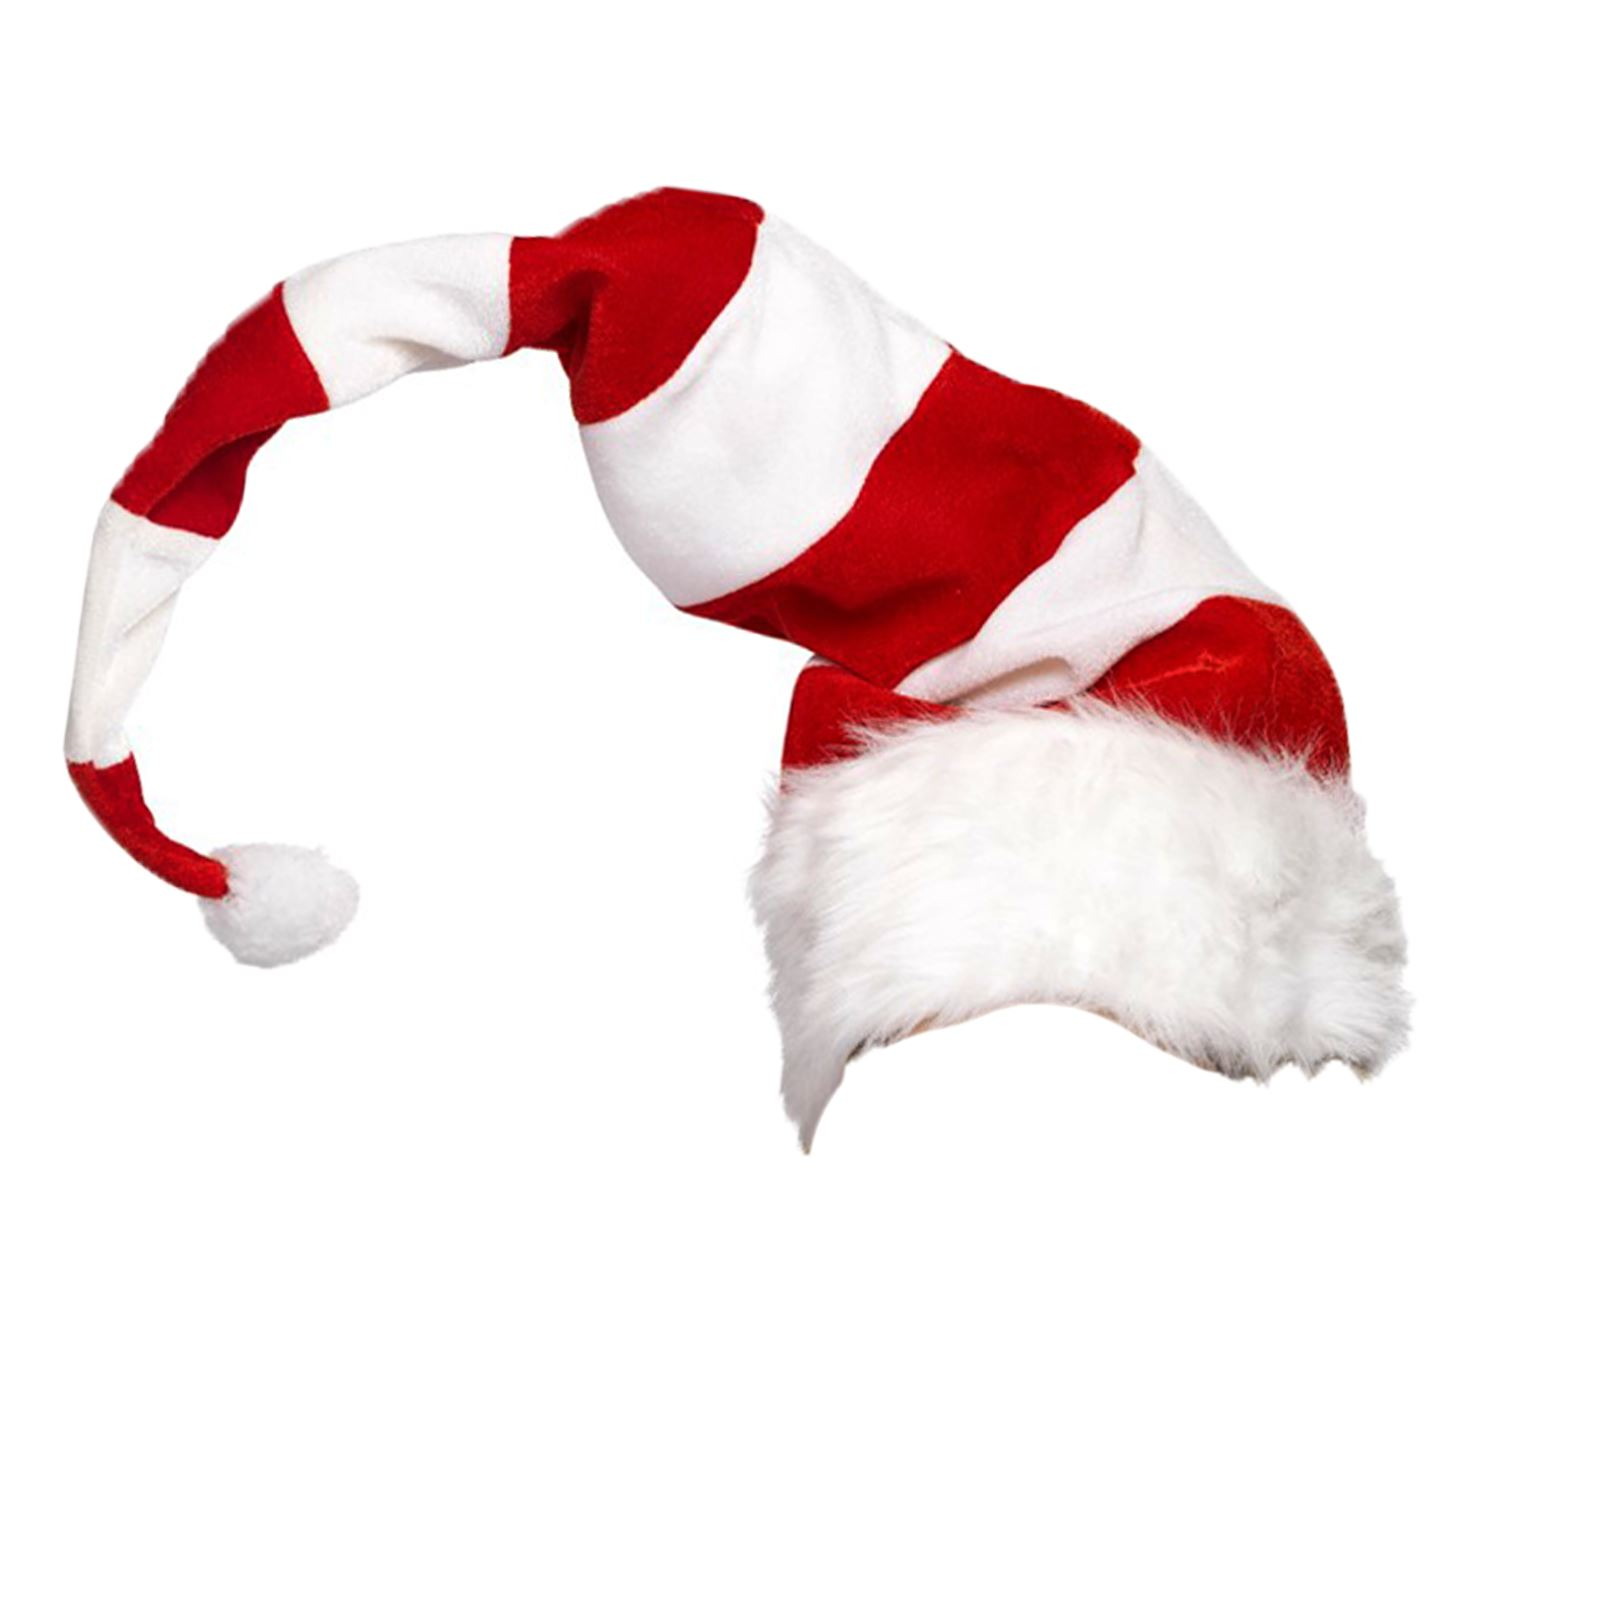 471c2f4640e90 Adults Unisex Red Striped Santa Mrs Claus Clown Jester Hat Fancy ...